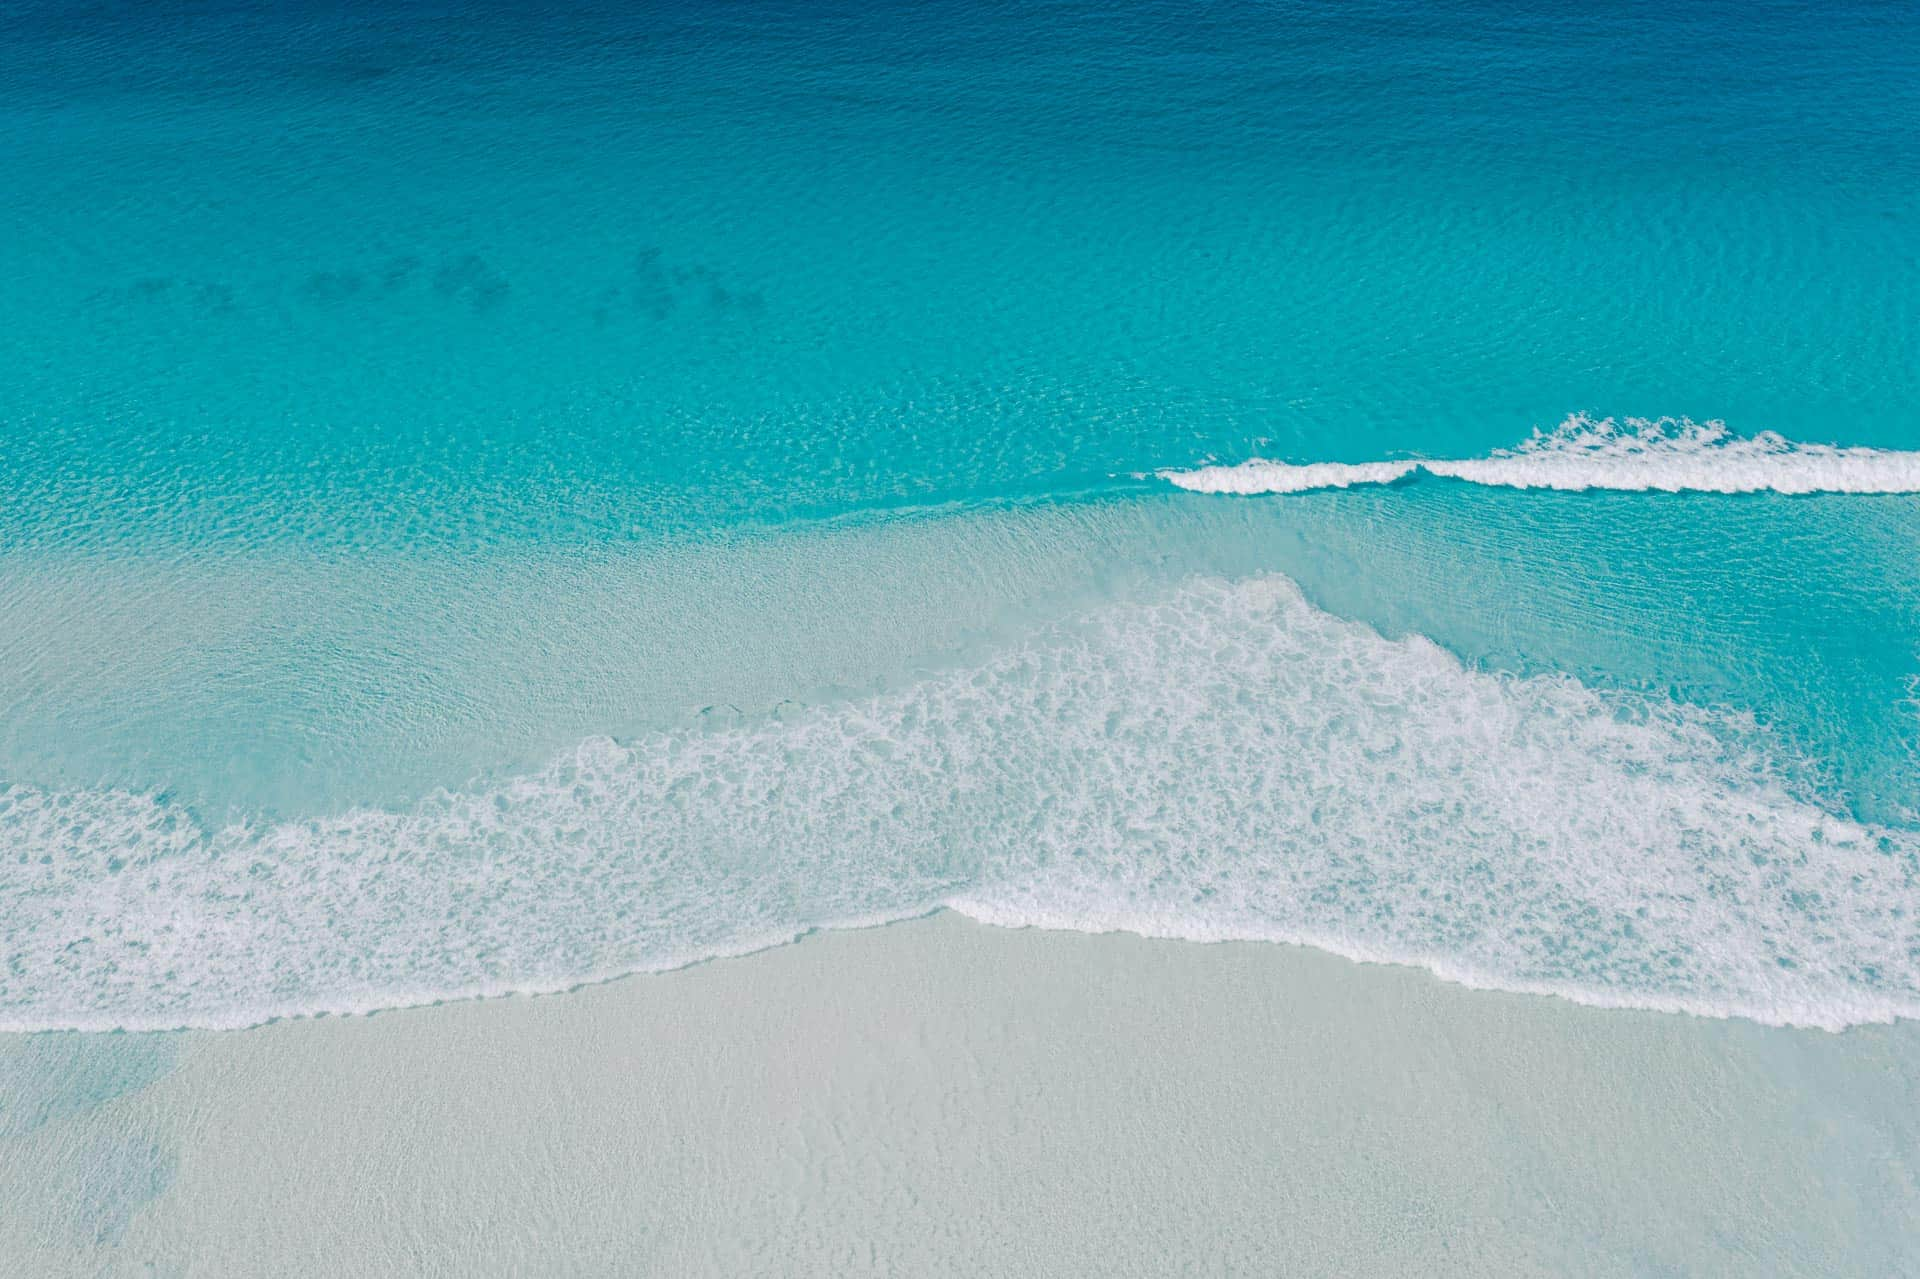 things to do in esperance, what to do in esperance, esperance things to do, esperance attractions, beaches in esperance